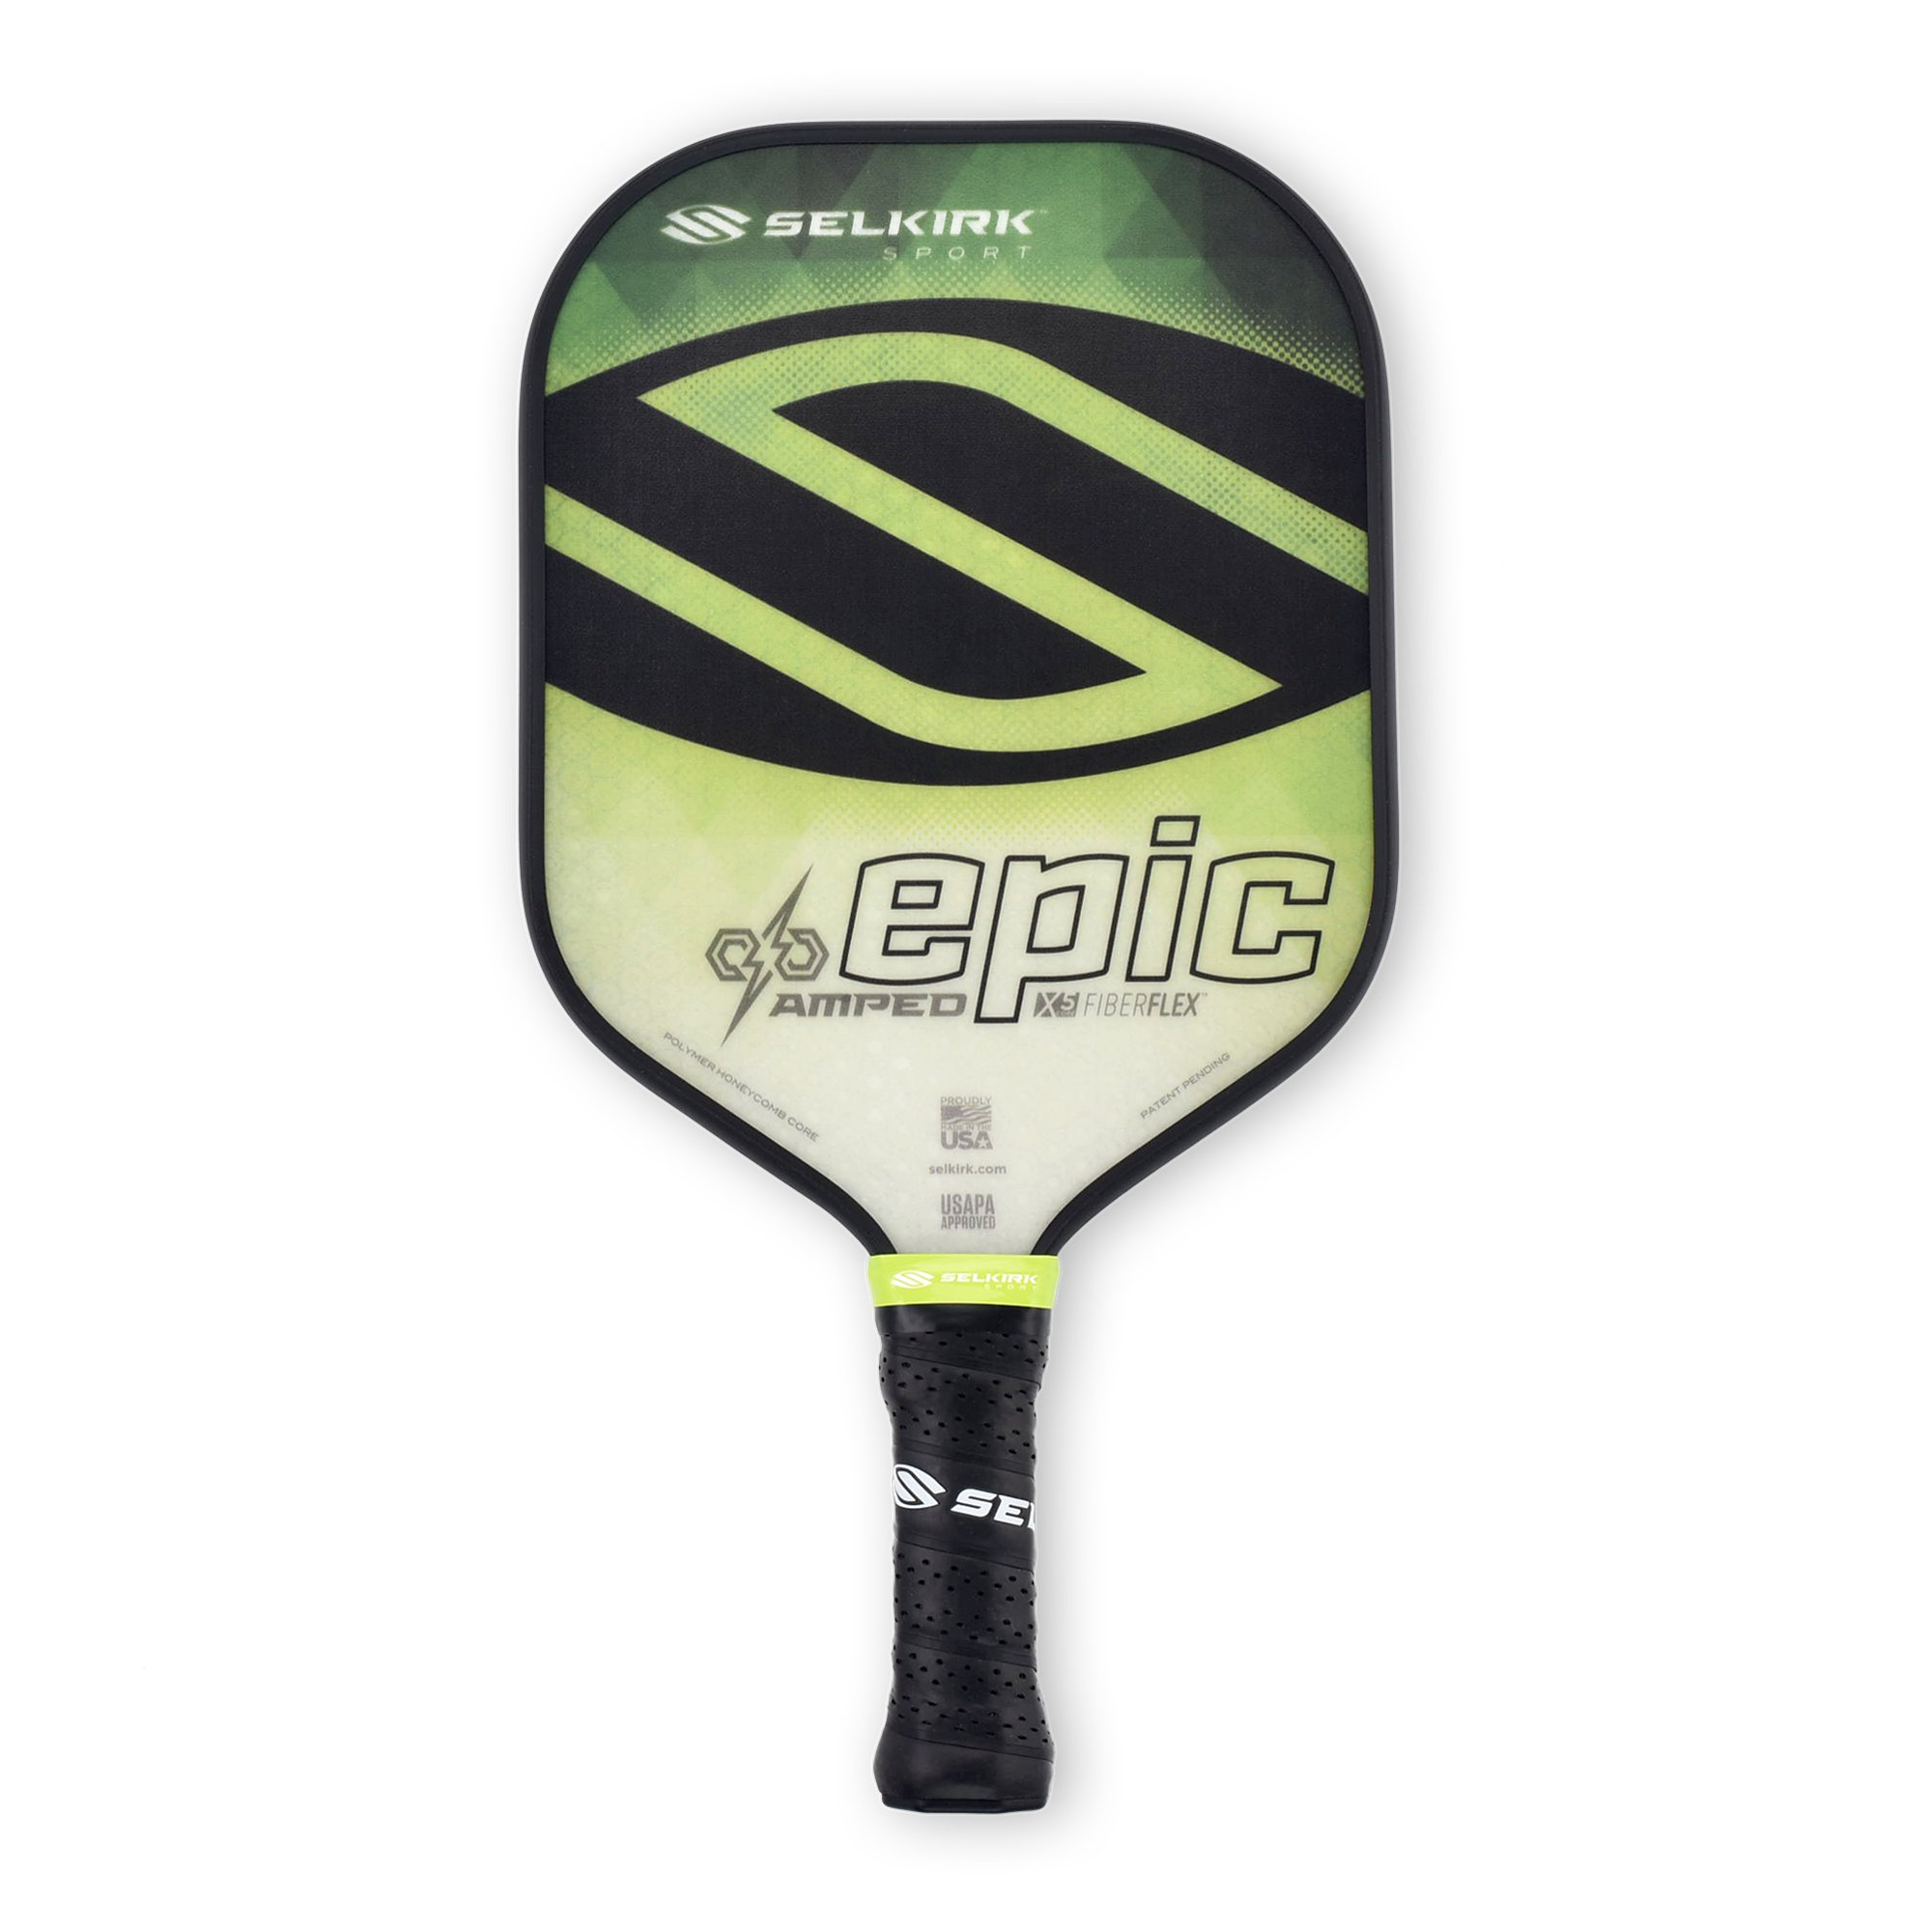 Selkirk Amped Pickleball Paddle - USAPA Approved - X5 Polypropylene Core - FiberFlex Fiberglass Face - 5 Sizes: Epic, S2, Omni, Maxima, and INVIKTA (Epic Midweight - Emerald Green)